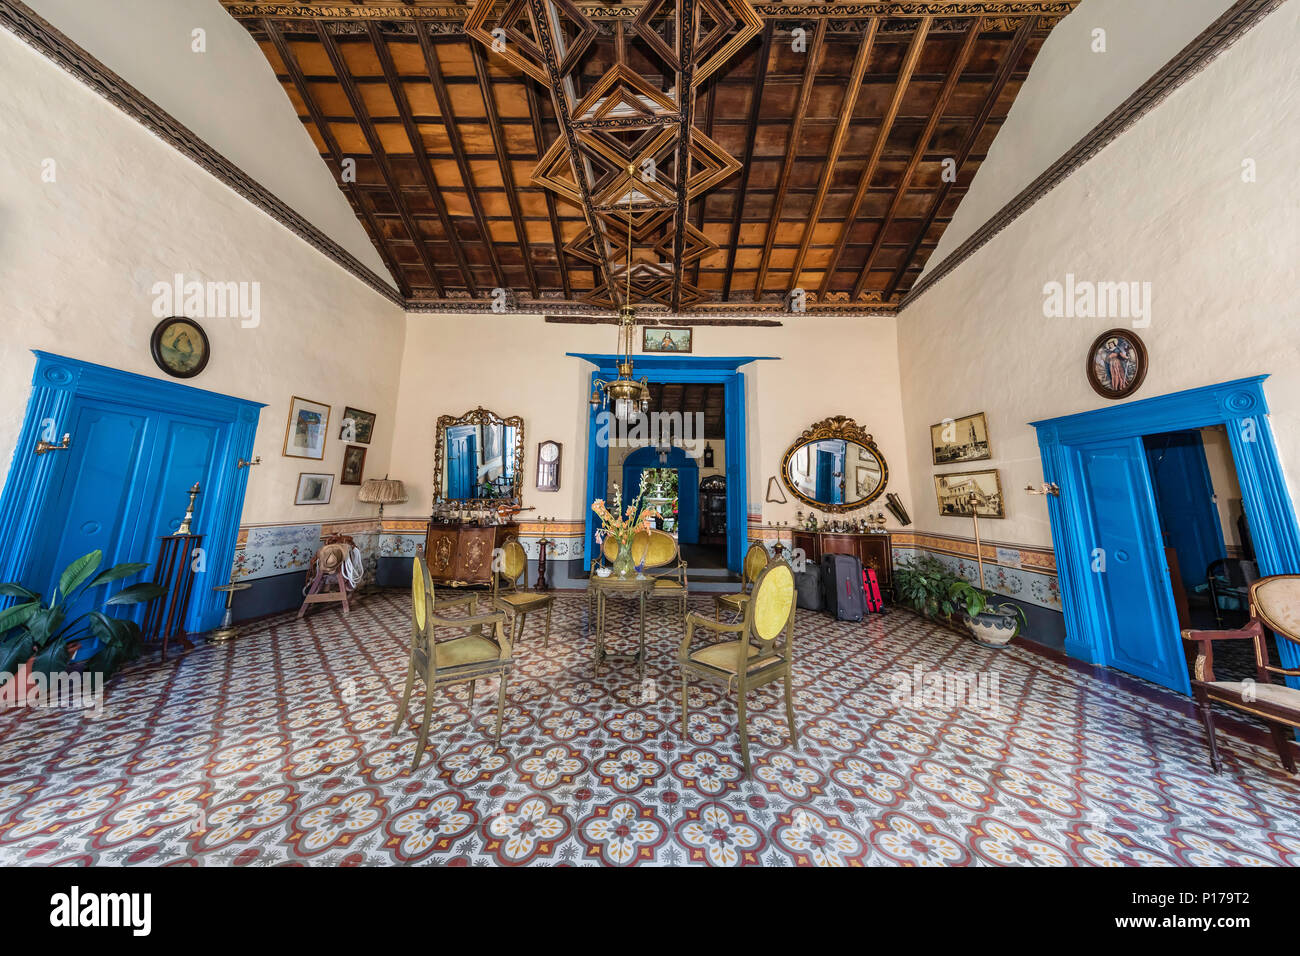 Casa Particular Cuba Trinidad Casa Particular In The Unesco World Heritage Site City Of Trinidad